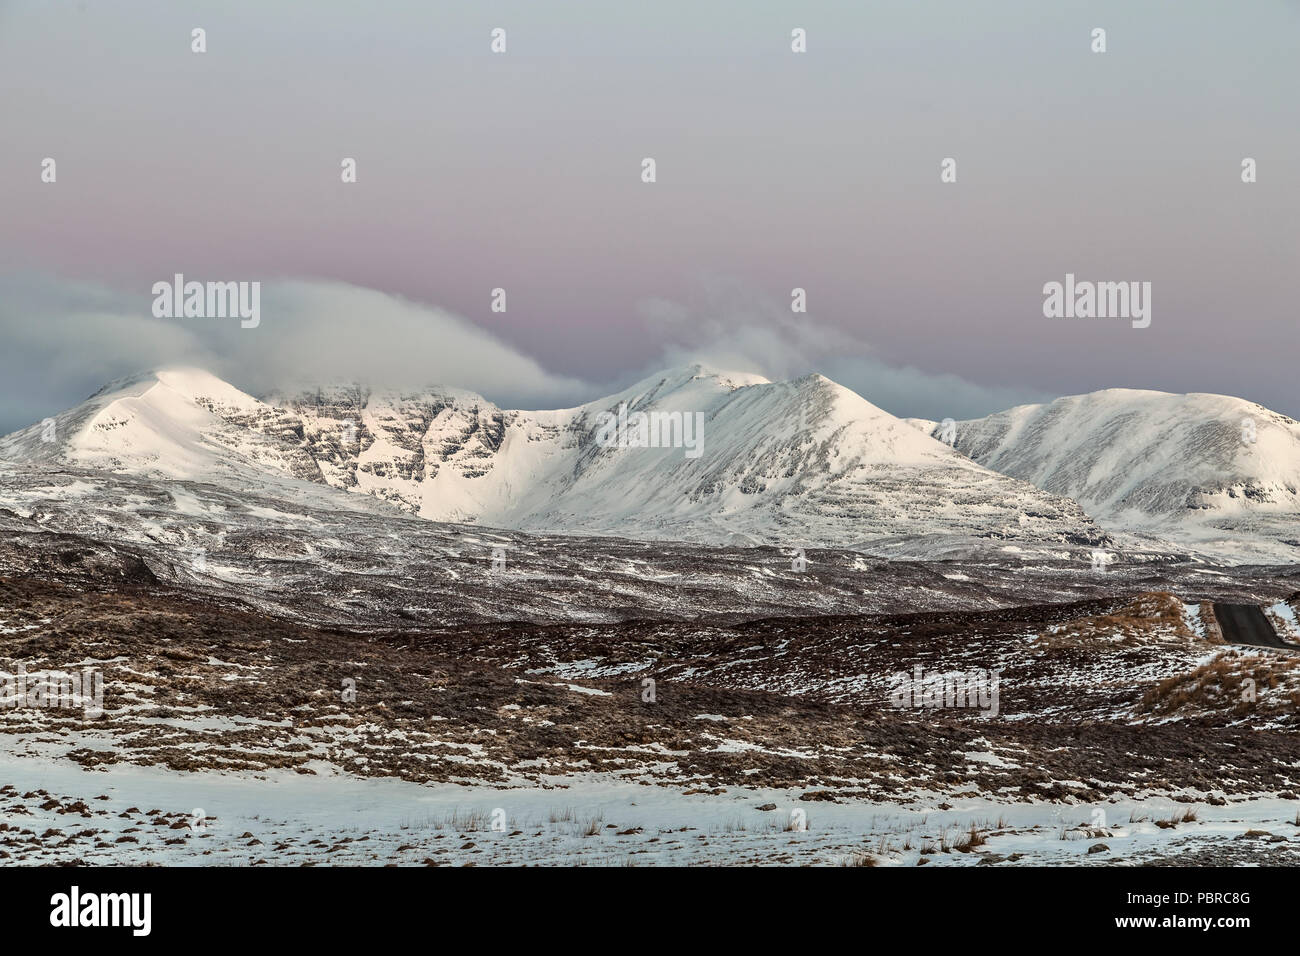 The mountain of An Teallach in Wester Ross, Northwest Highlands of Scotland. An Teallach  has two Munros, the higher Bidean a' Ghlas Thuill. - Stock Image